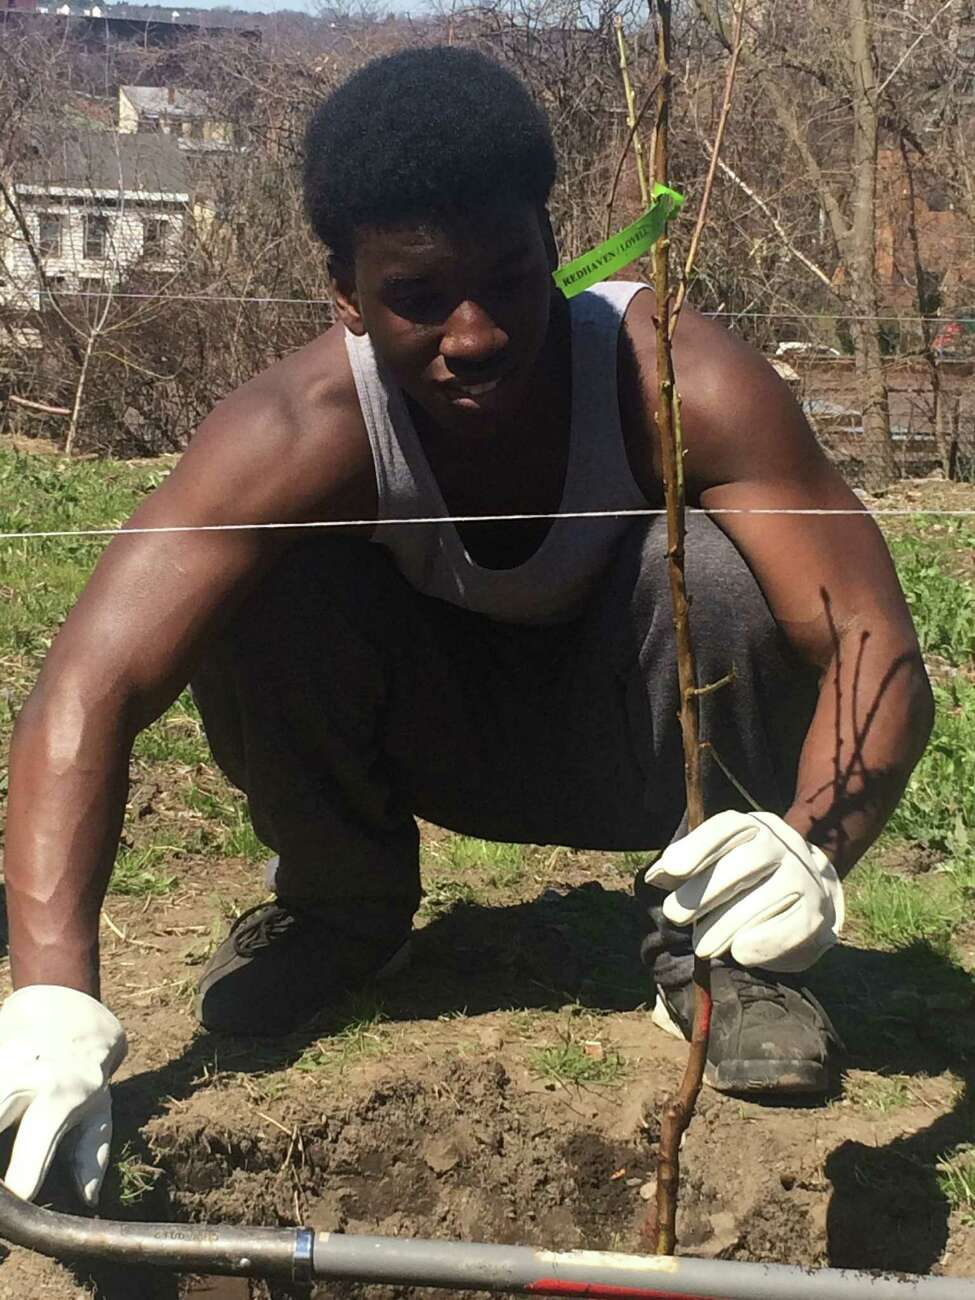 A participant helps plant an orchard for Capital Roots' Produce Project in 2016. (Provided photo)